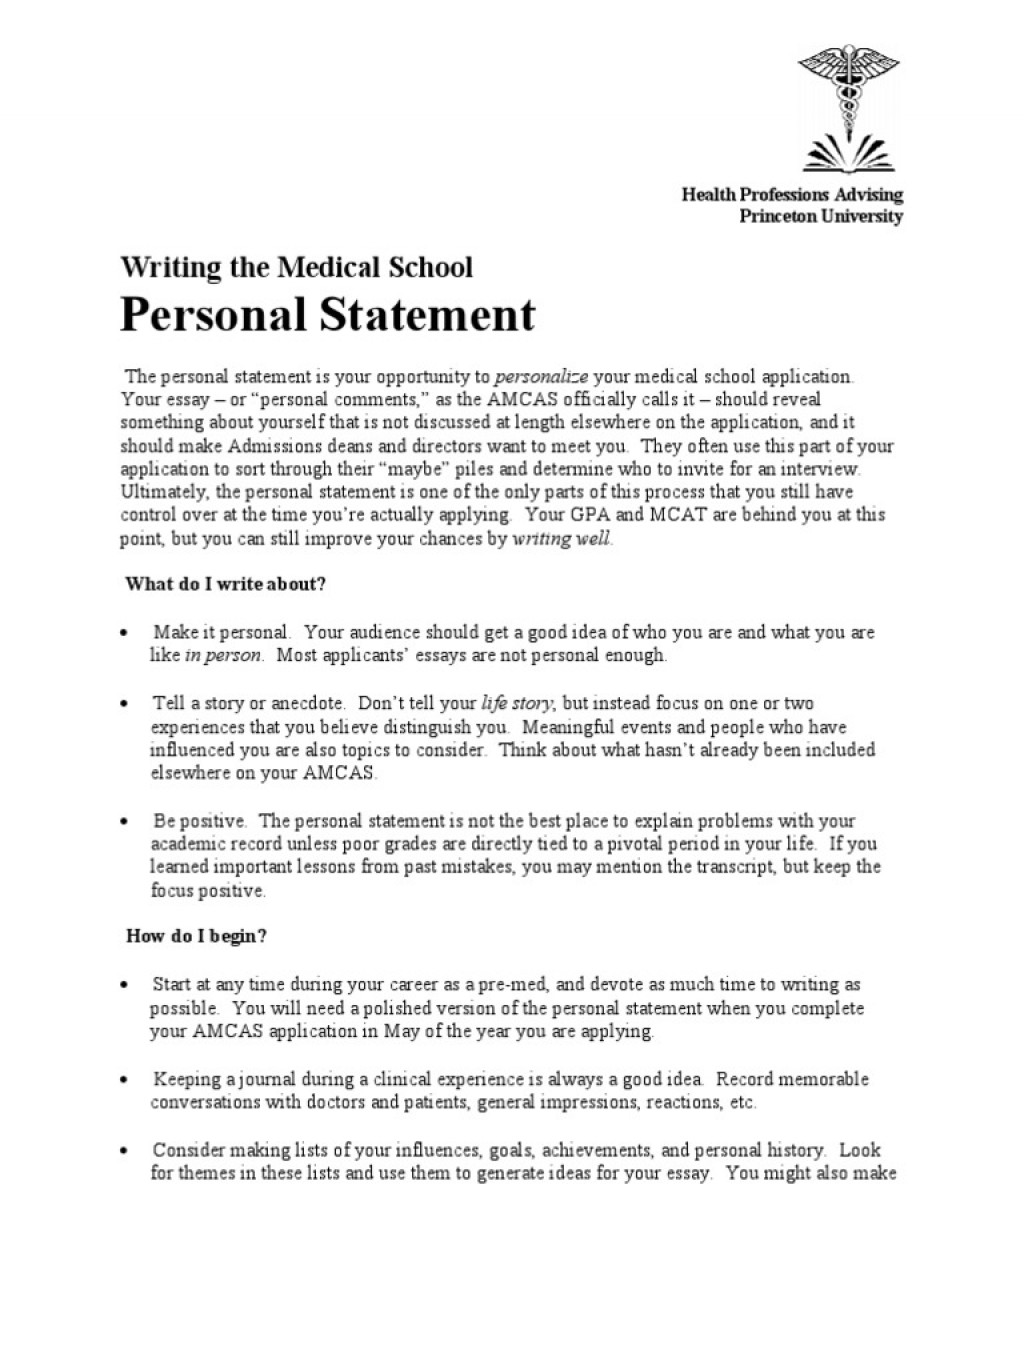 020 Writing The Personal Statement Princeton Medical S 57604e71b6d87f03a78b47aa Essay Example Why Career Is Important In Our Frightening Life Large